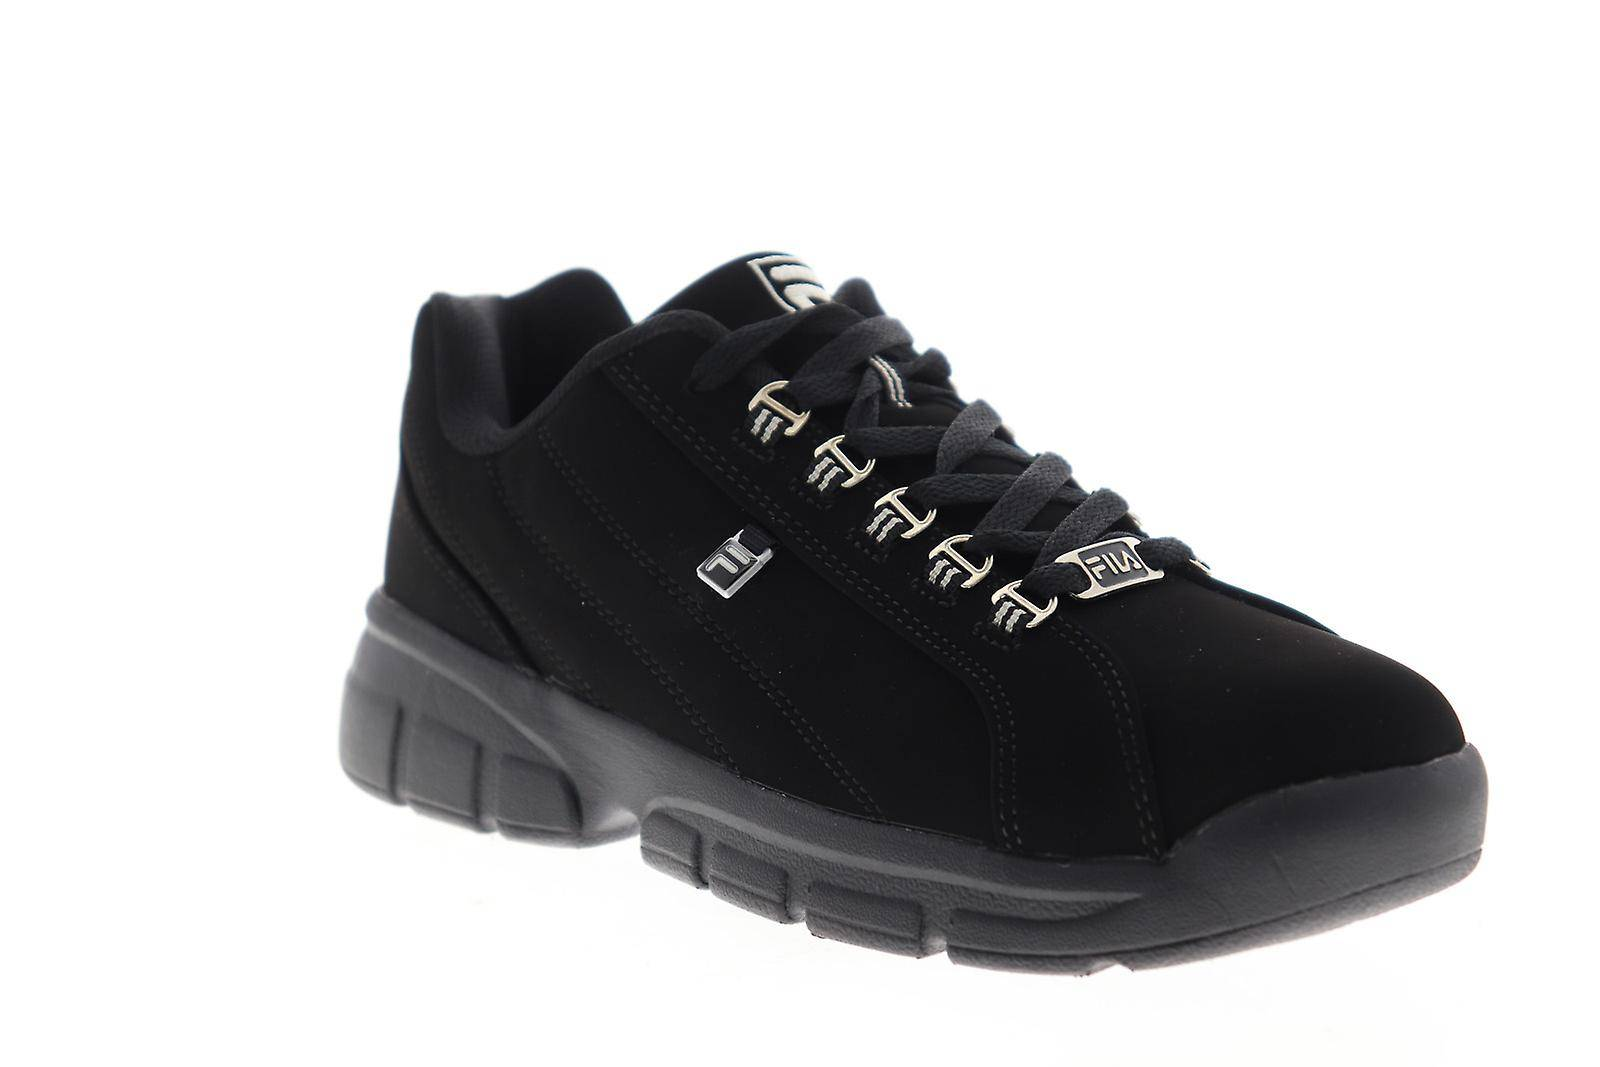 Fila Exchange 2K10 Hommes Noir Synthétique Low Top Sneakers Chaussures